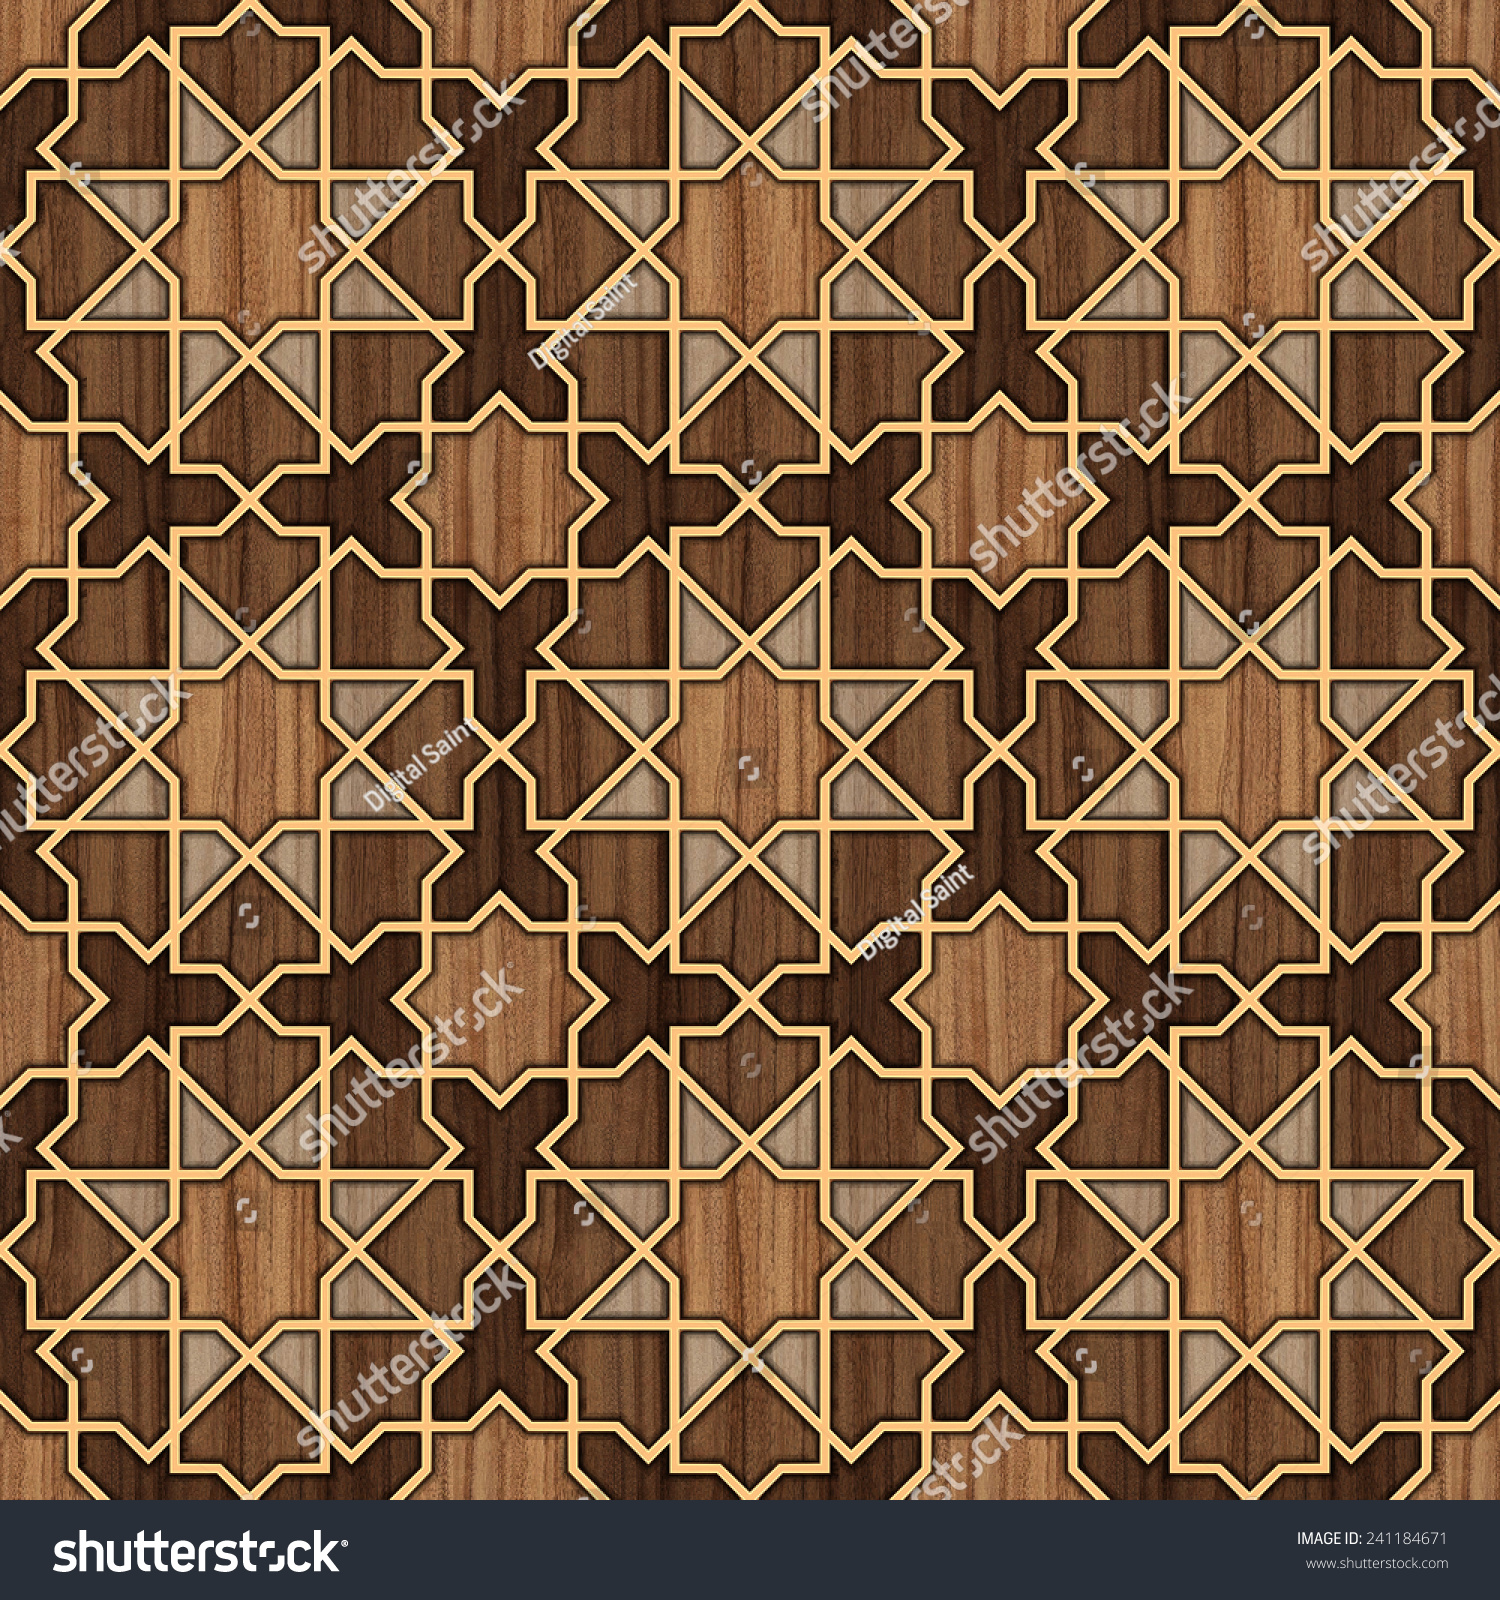 Arabesque tile floor